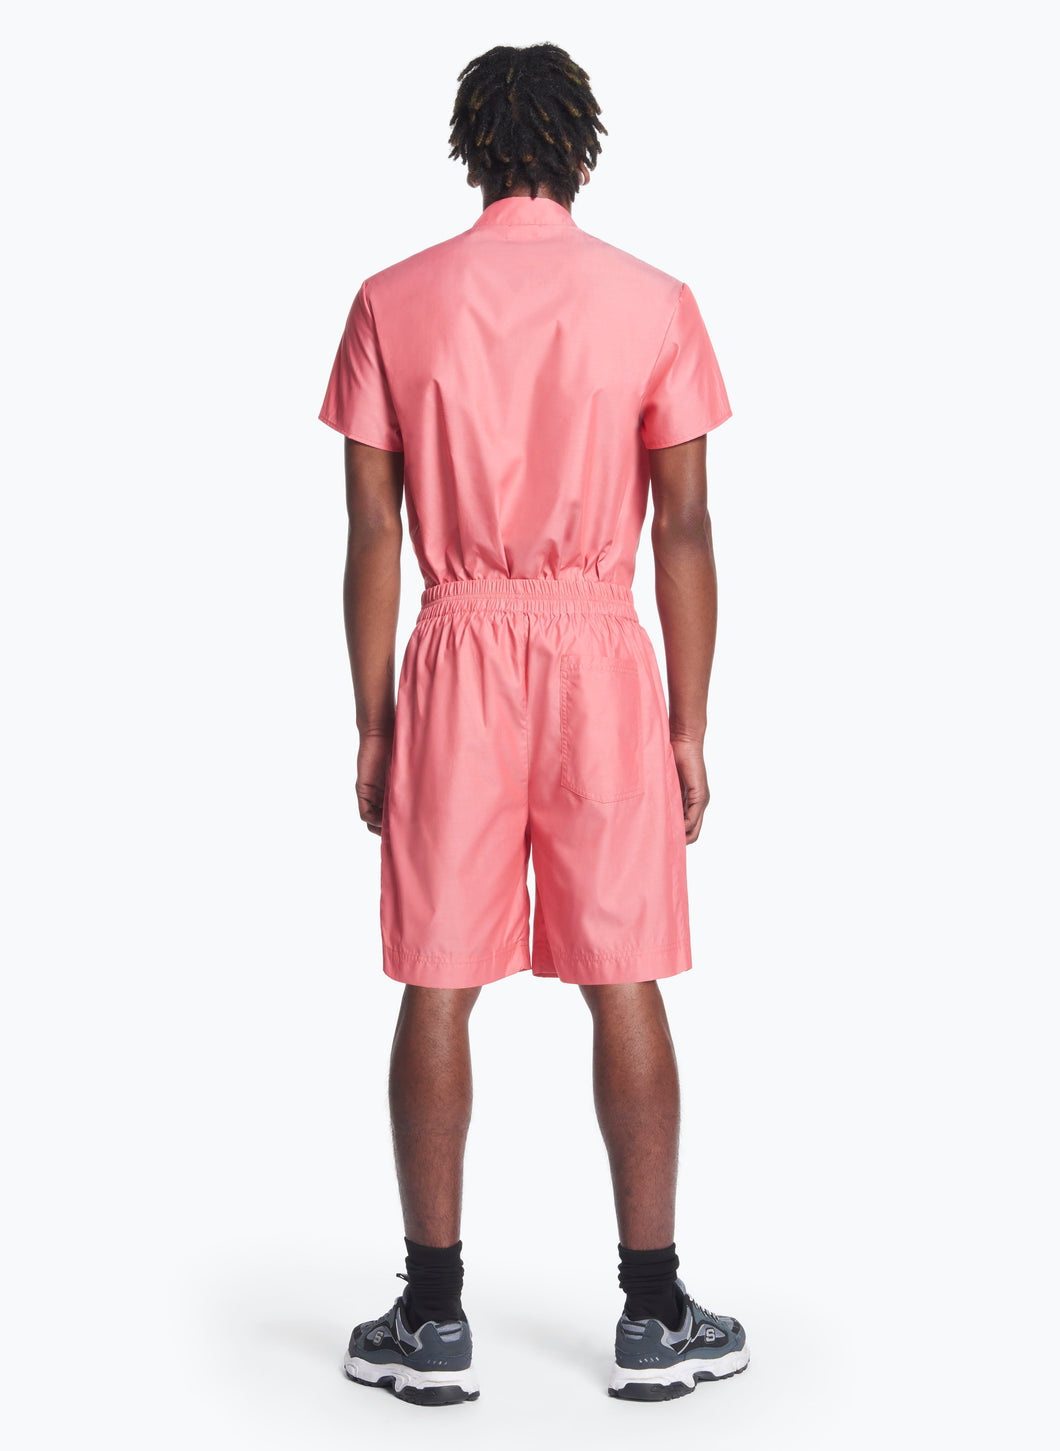 Bermuda Shorts with Stitched Waist in Pink Poplin